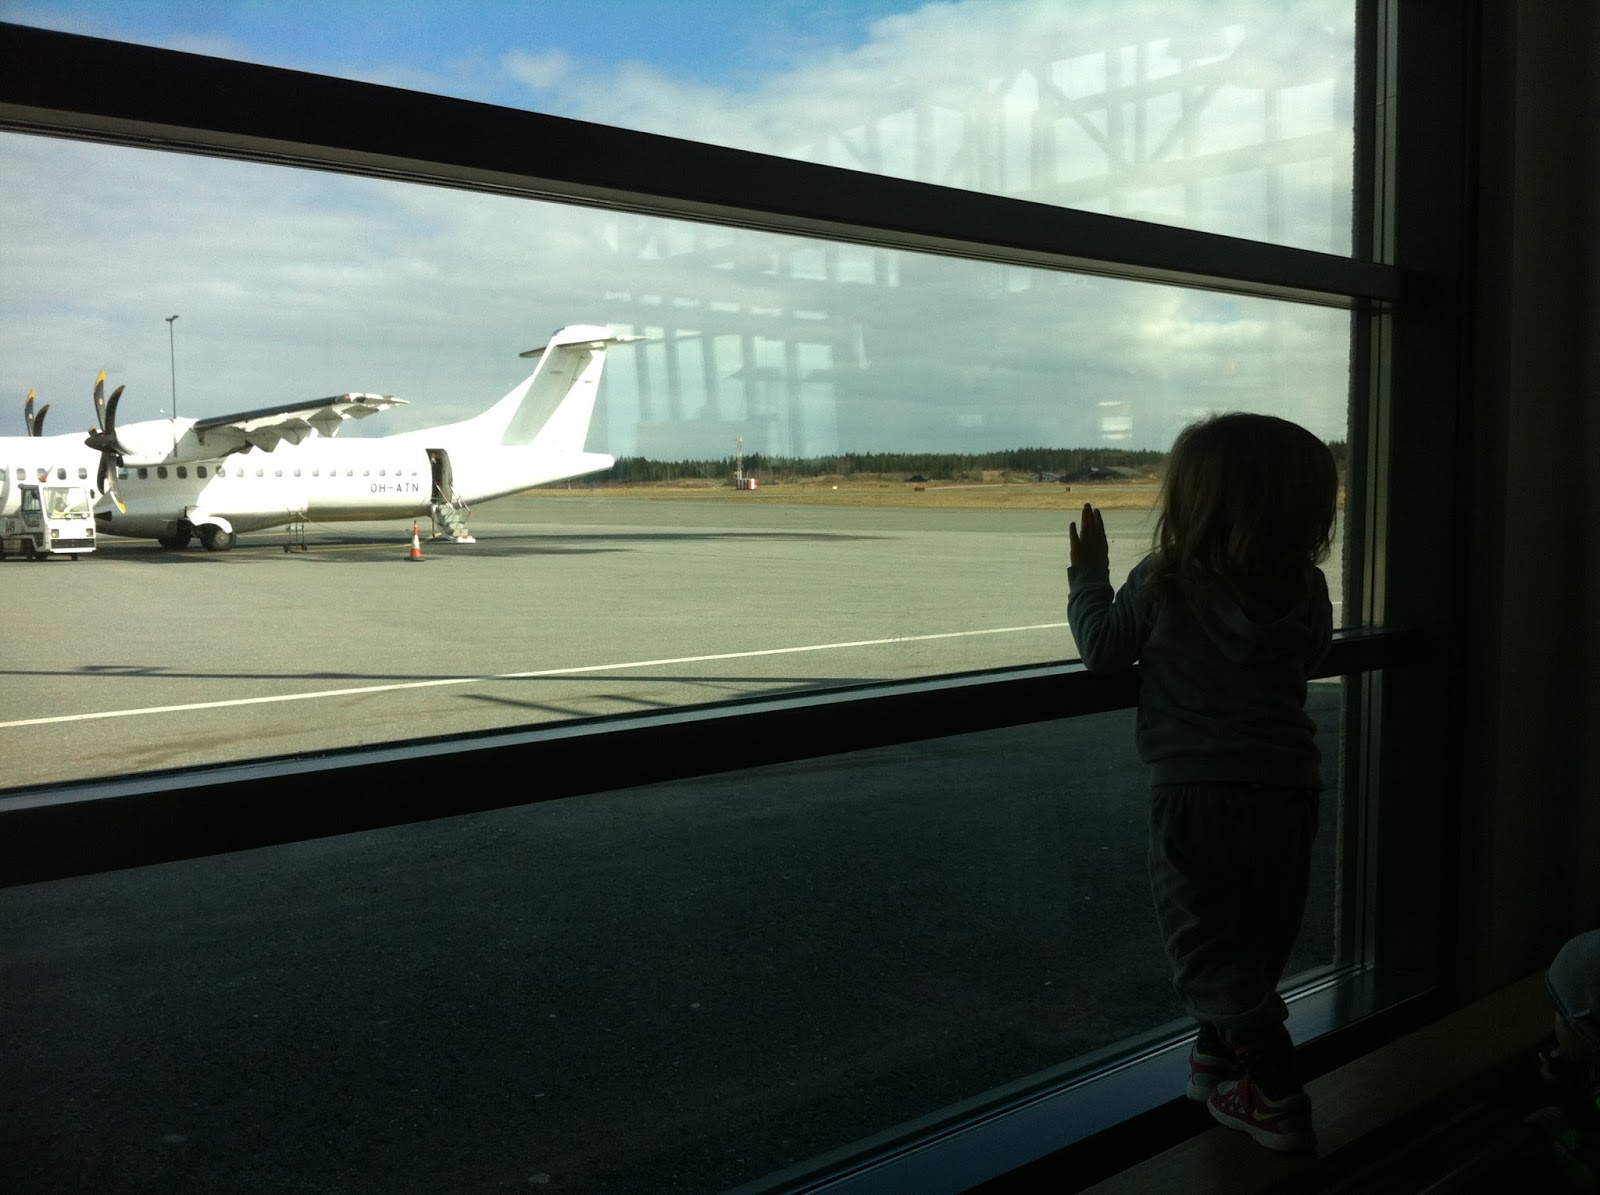 toddler standing and watching airplane at airport